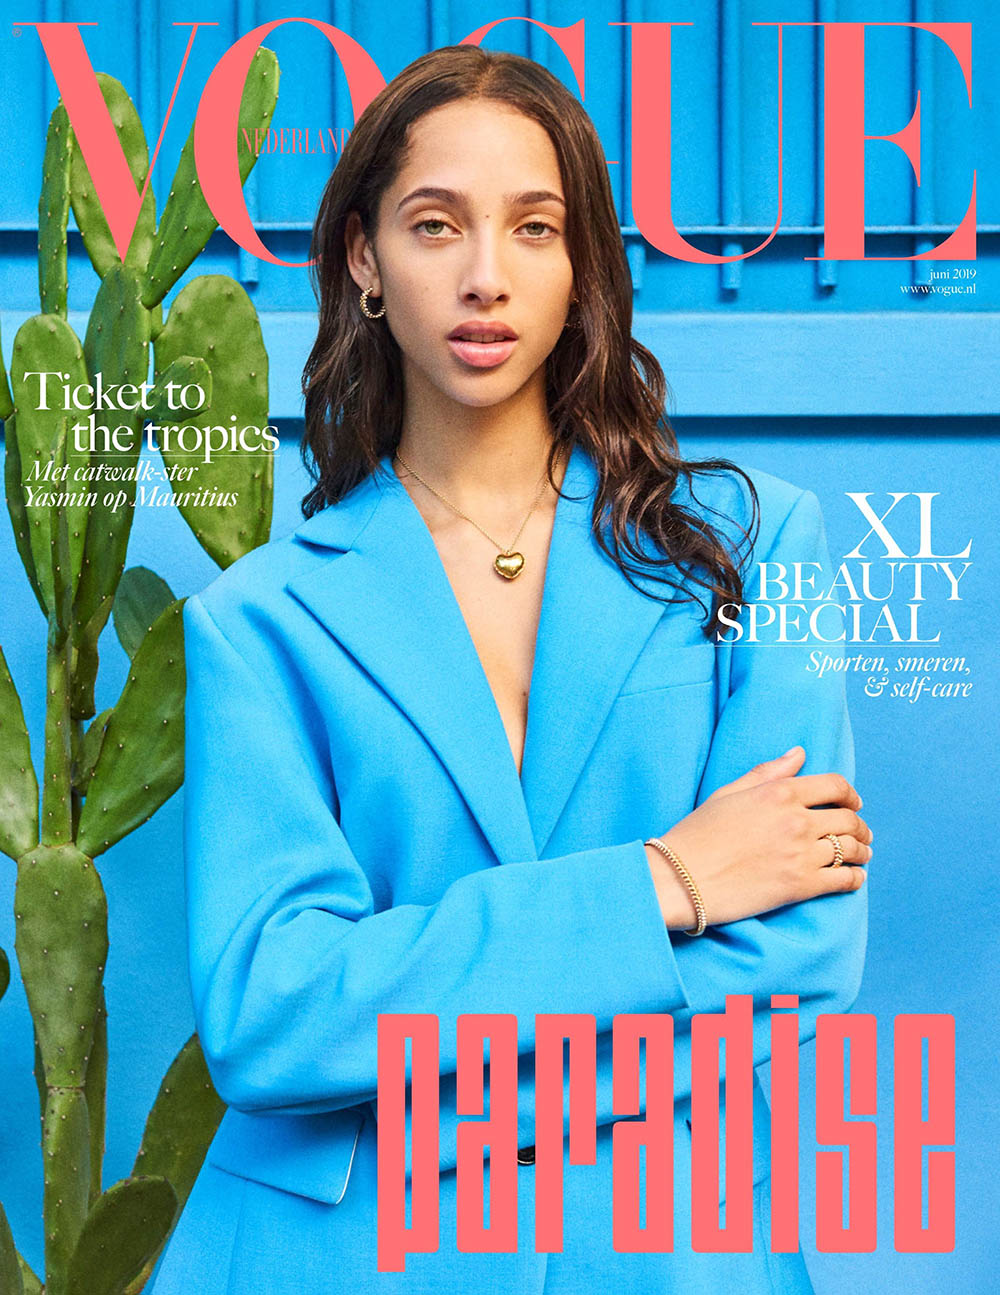 Yasmin Wijnaldum covers Vogue Netherlands June 2019 by Tung Walsh